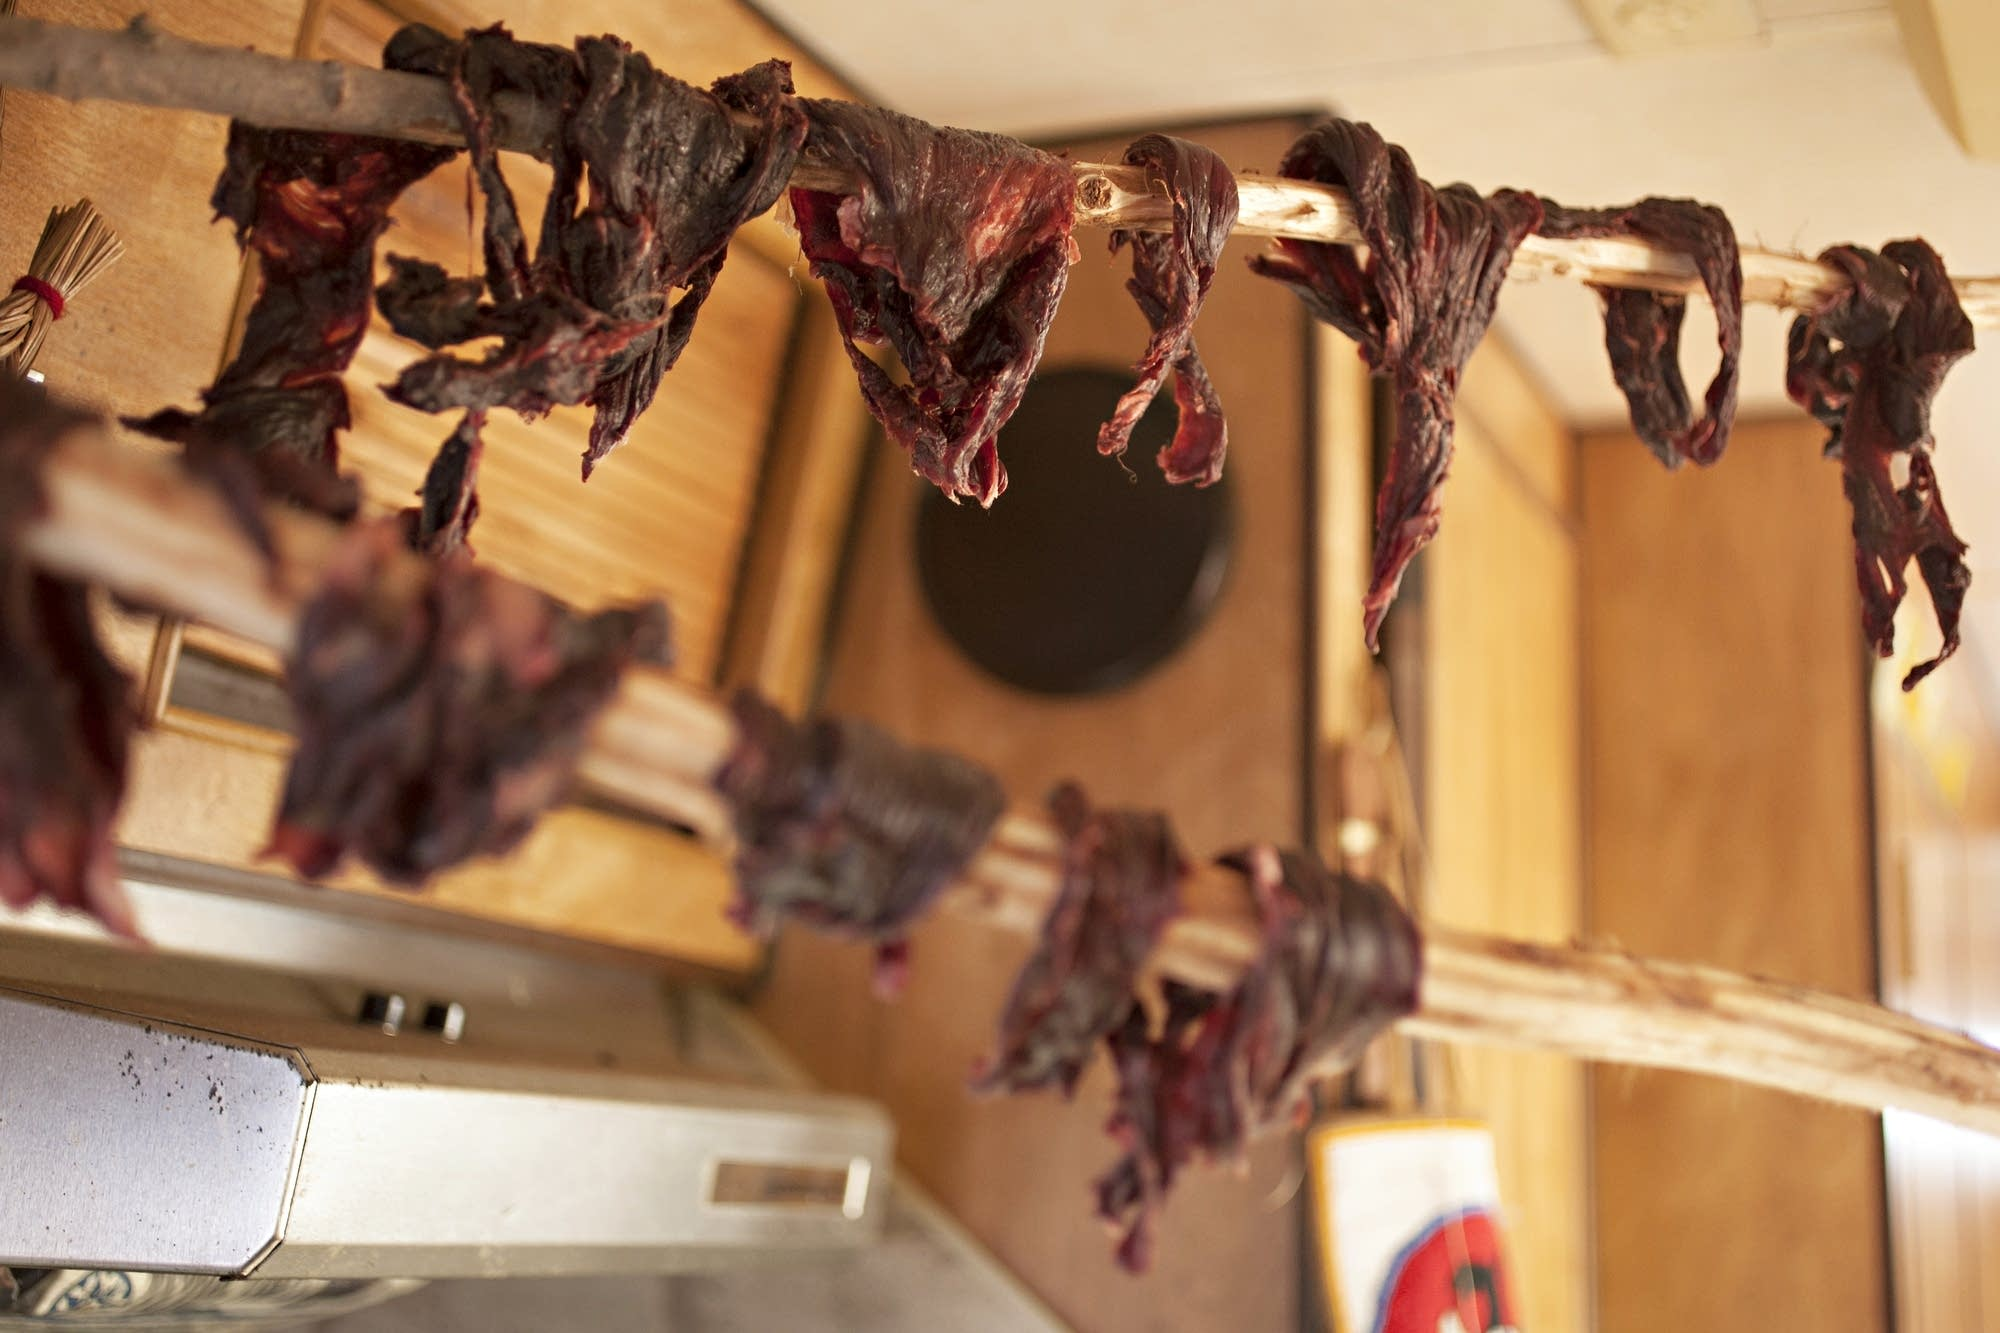 Strips of venison dry inside a small RV.